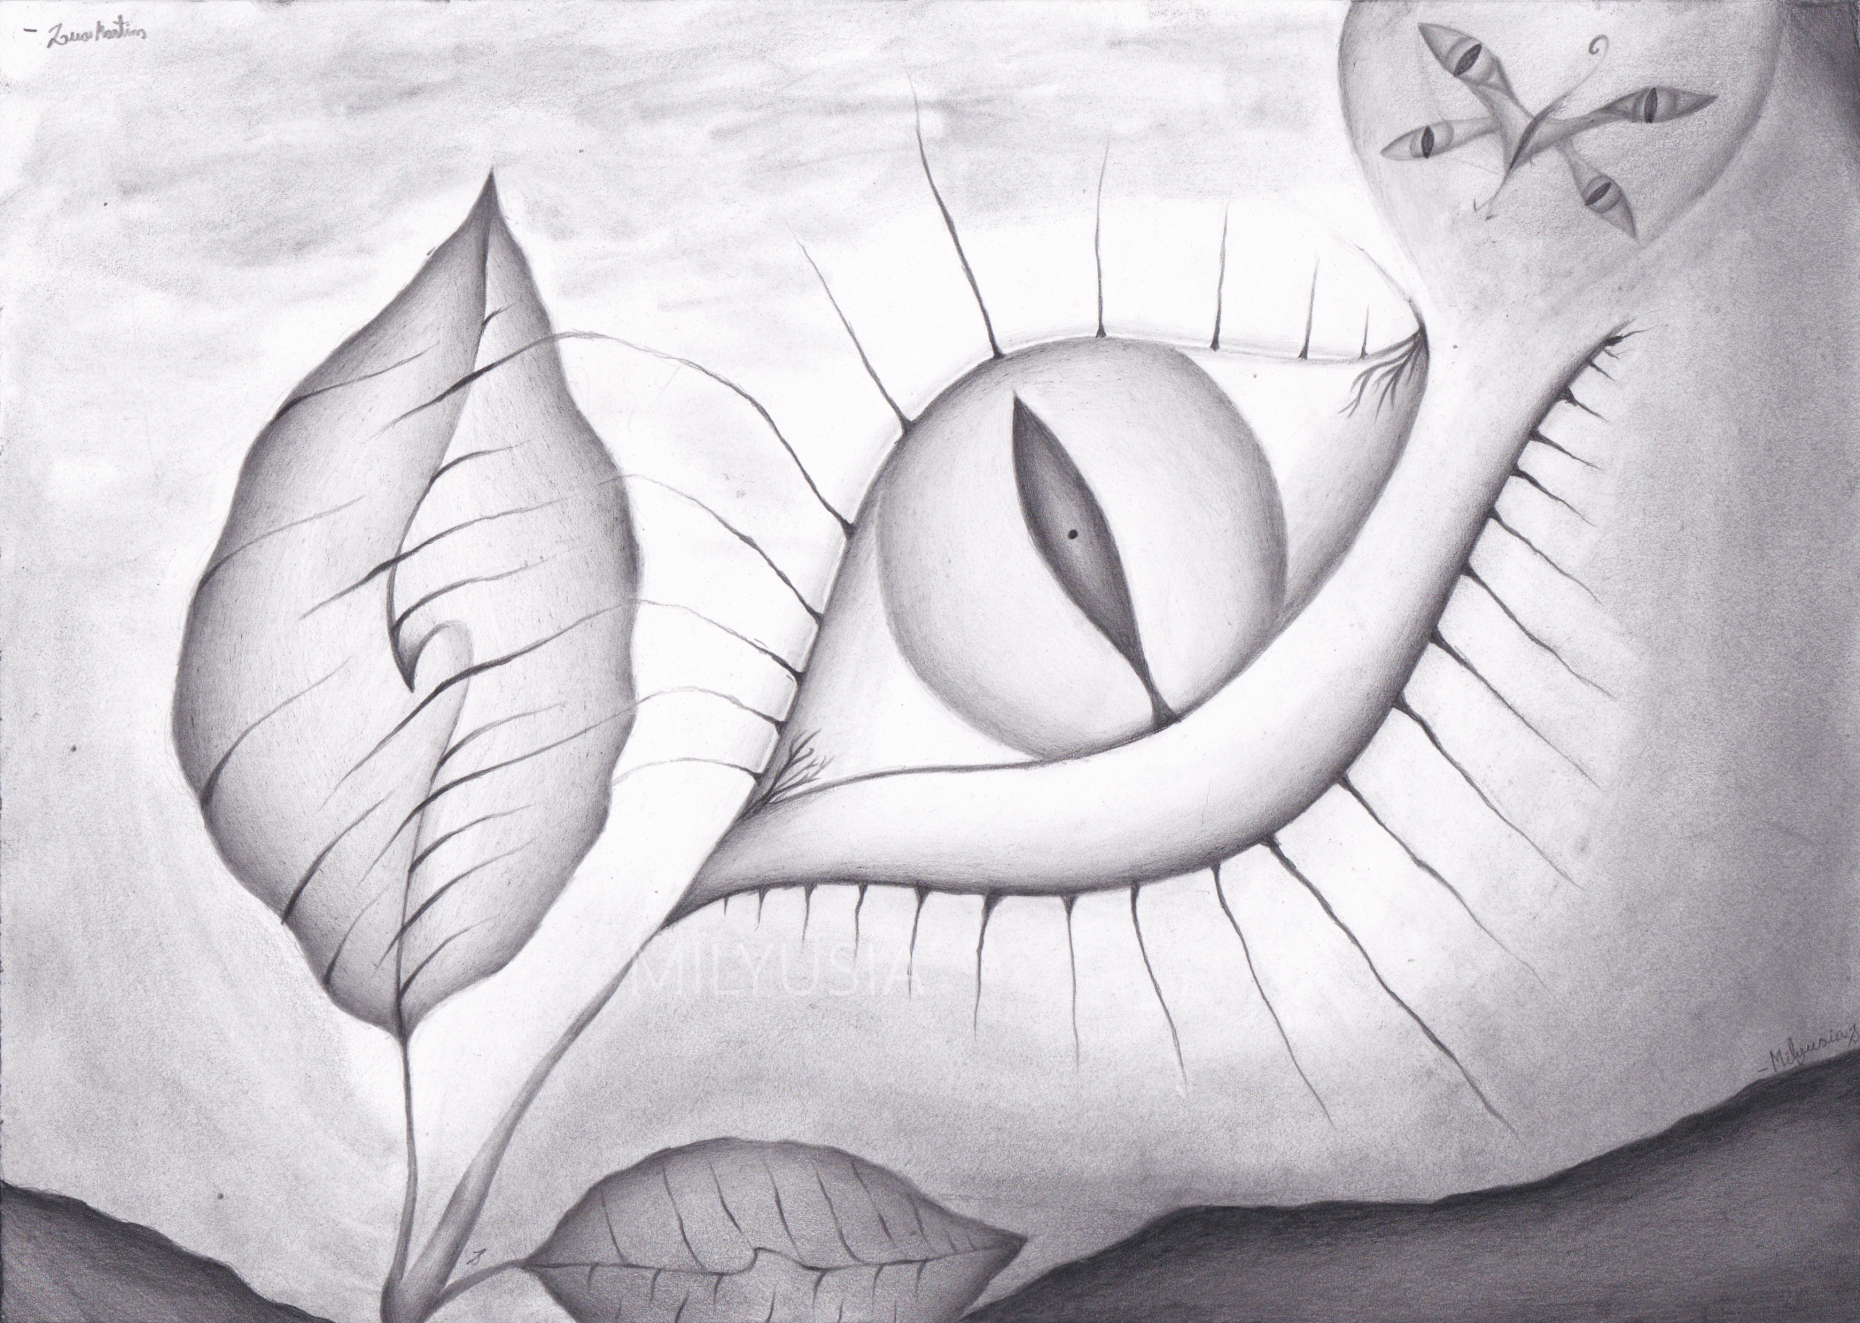 abstract pencil drawings - Ideal.vistalist.co